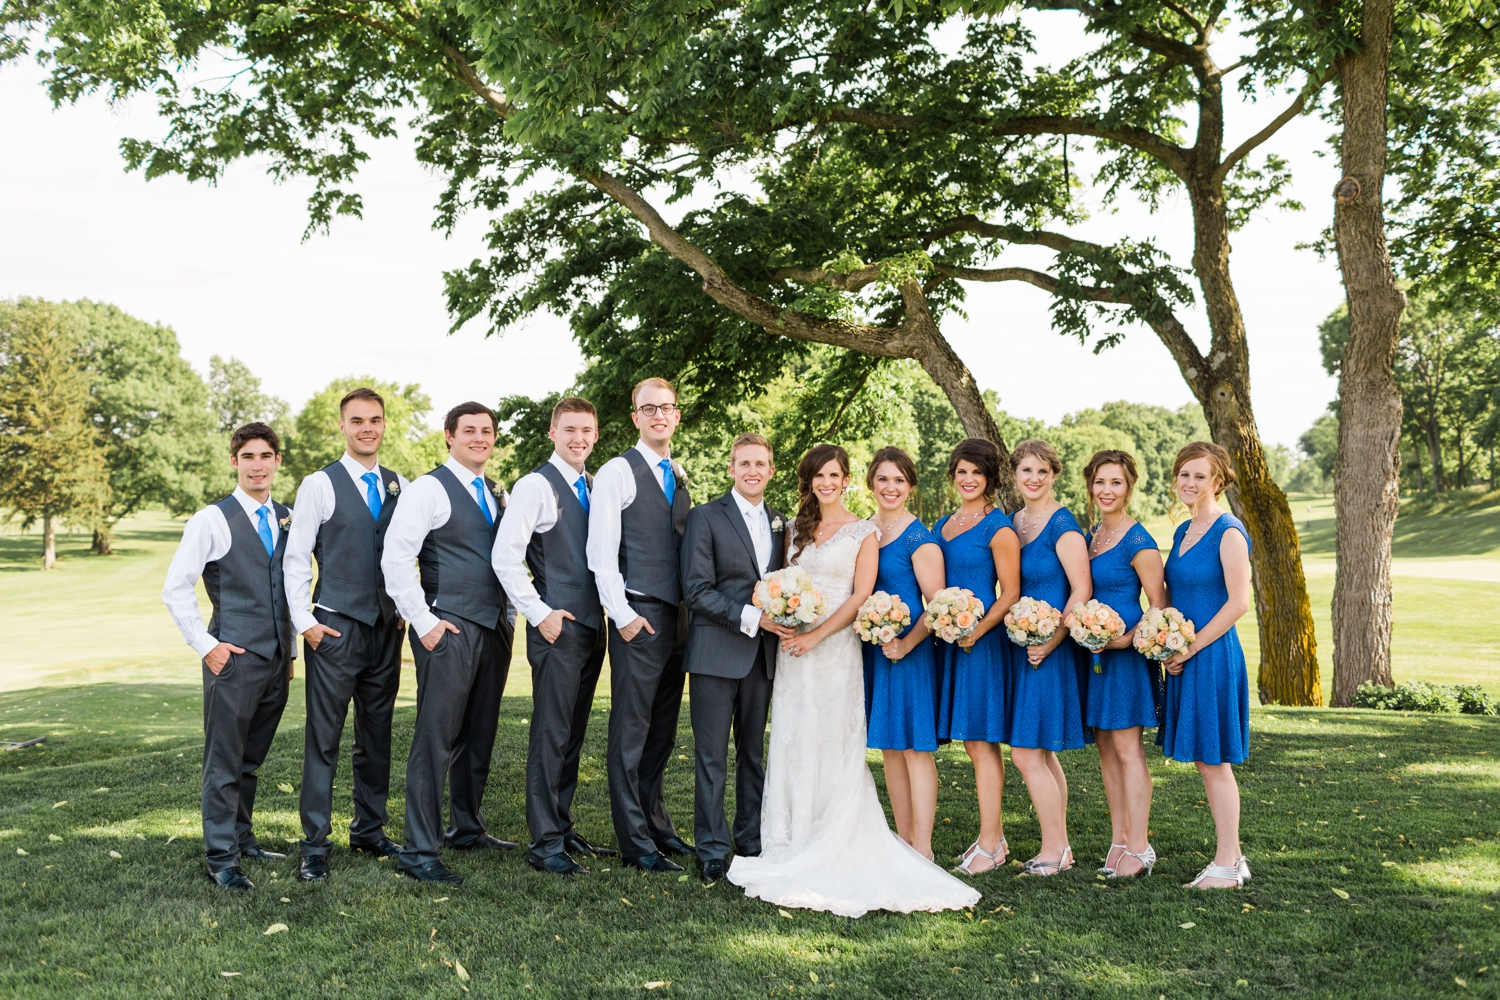 NCR_Country_Club_Kettering_Ohio_Wedding_Photography_Chloe_Luka_Photography_7152.jpg